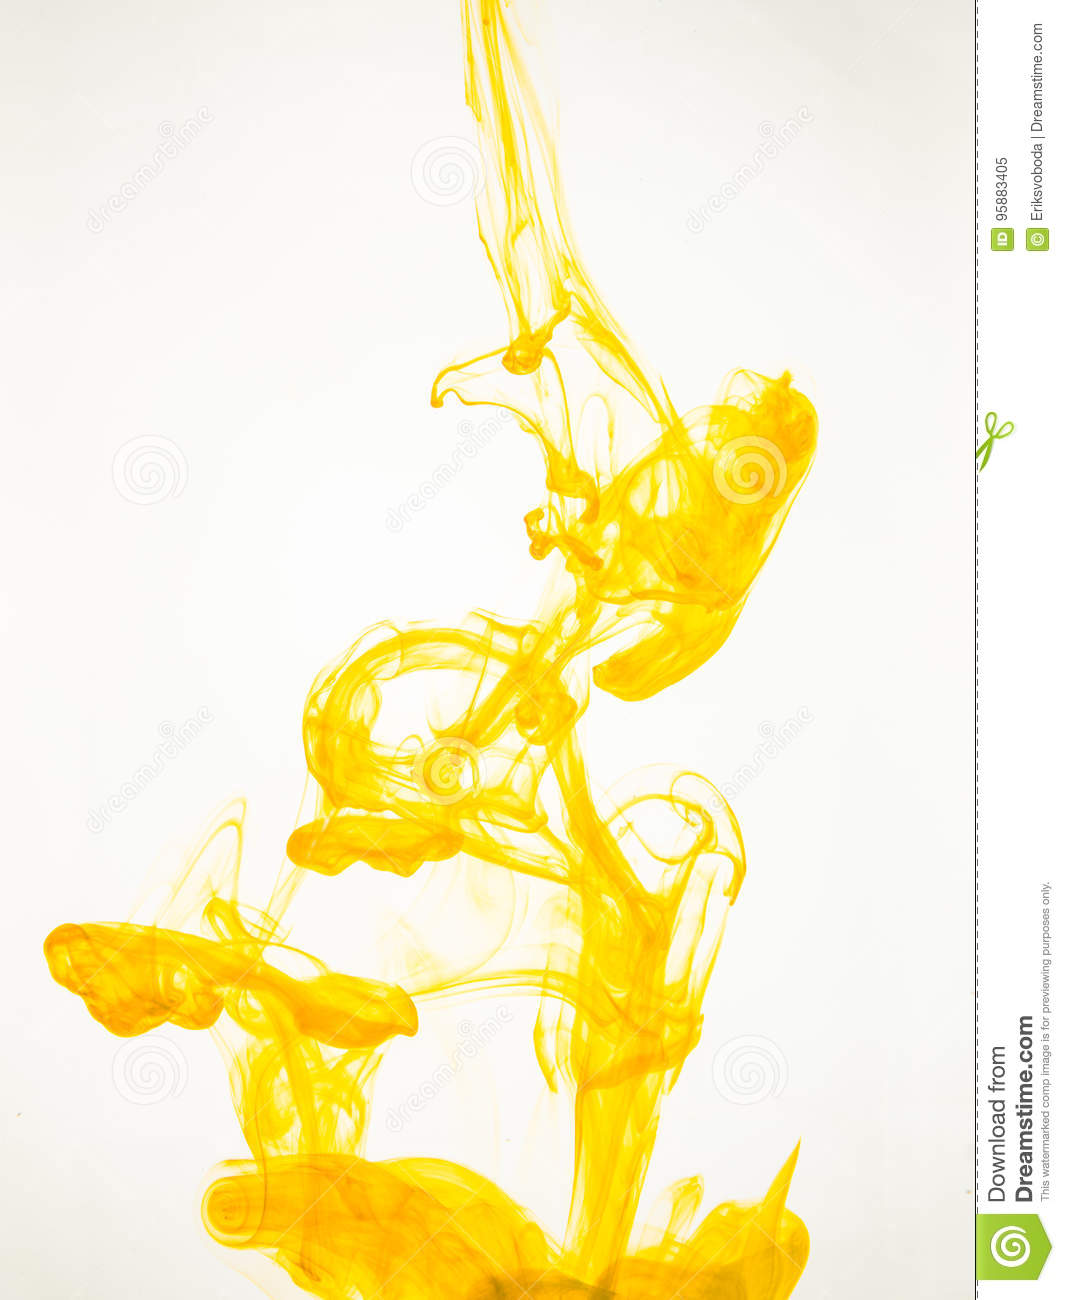 Ink swirl in a water on white background. The paint splash in the water. Soft dissemination a droplets of colored ink in